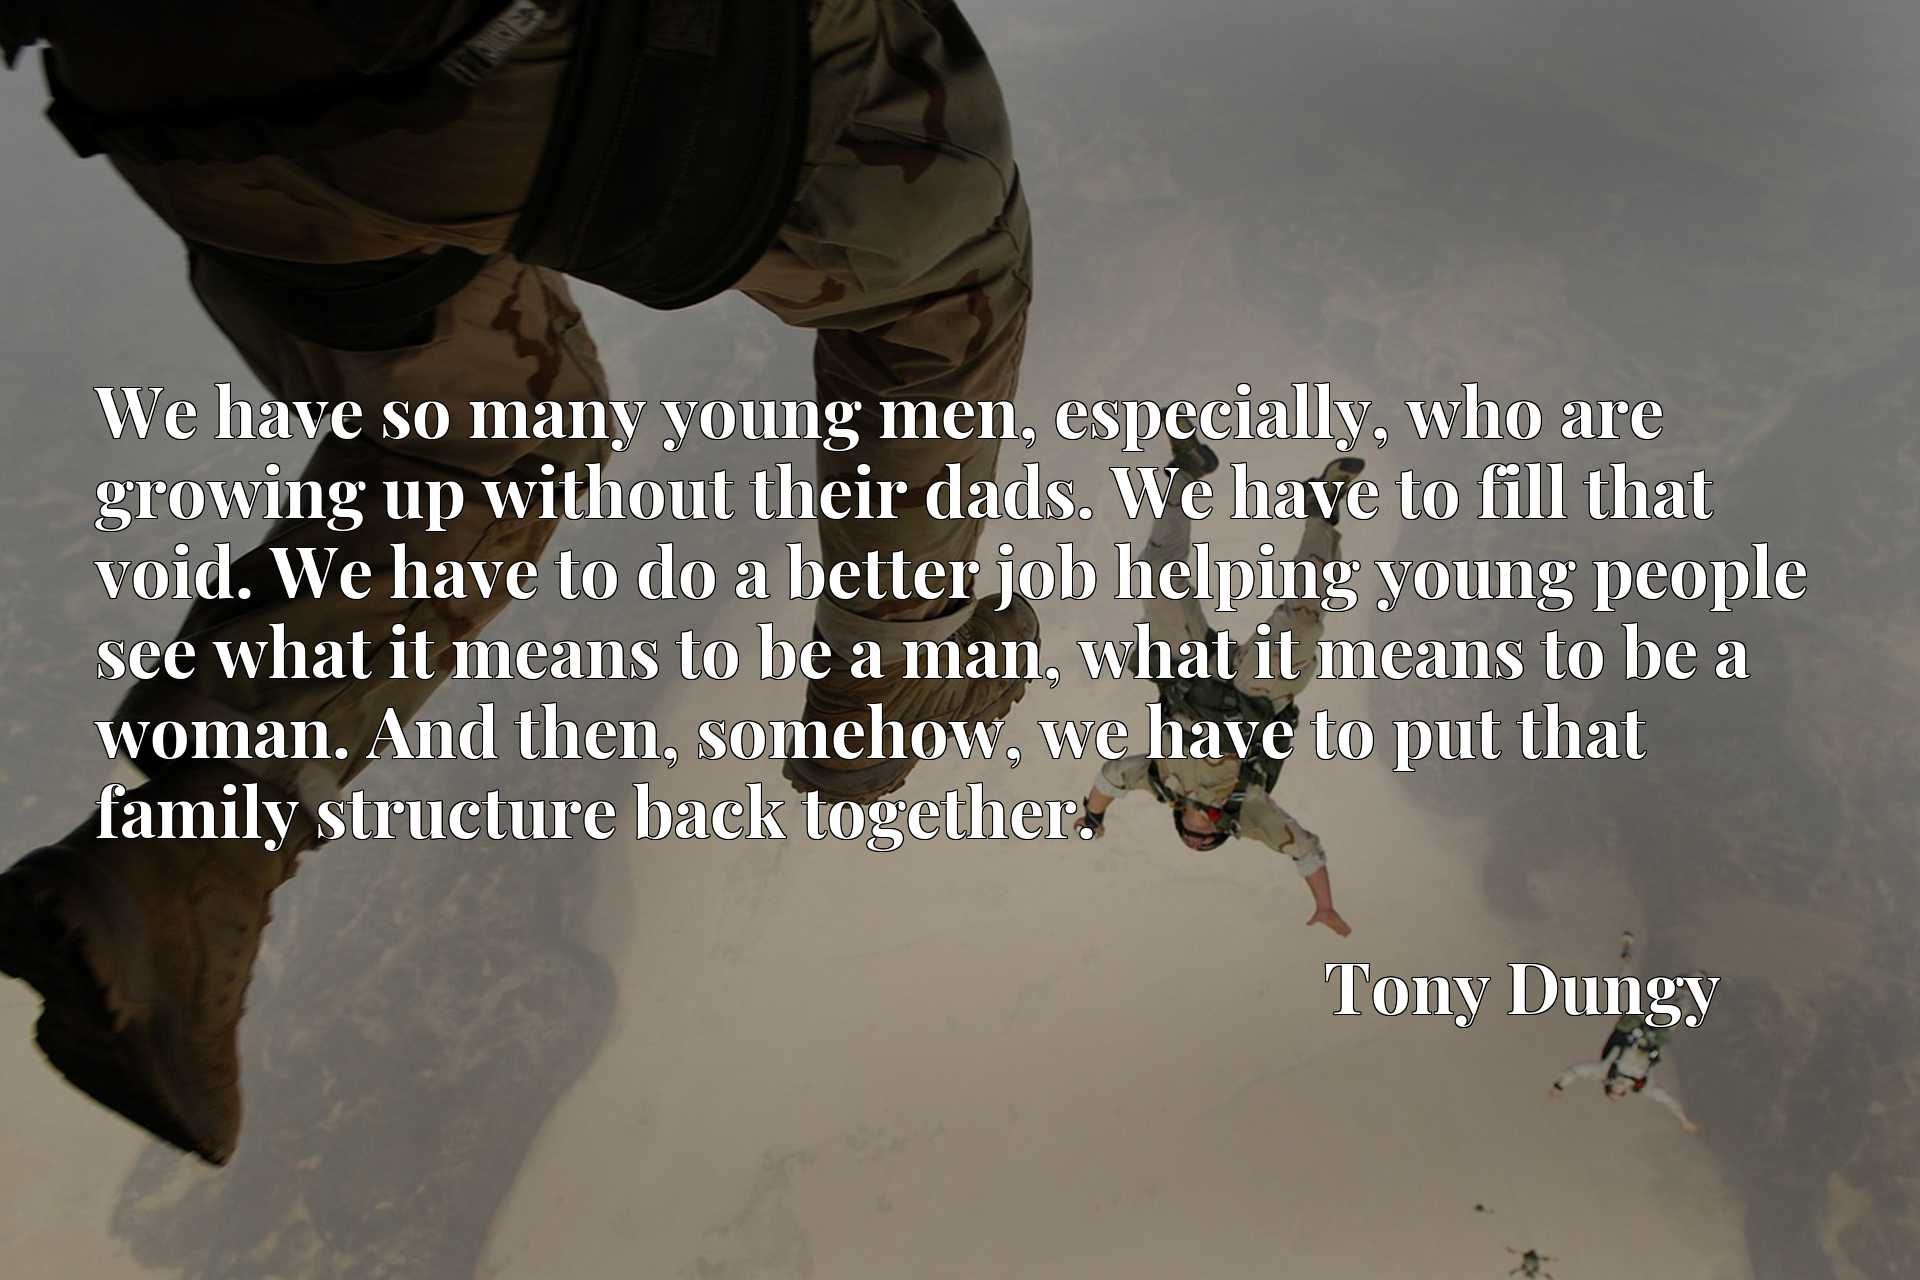 We have so many young men, especially, who are growing up without their dads. We have to fill that void. We have to do a better job helping young people see what it means to be a man, what it means to be a woman. And then, somehow, we have to put that family structure back together.